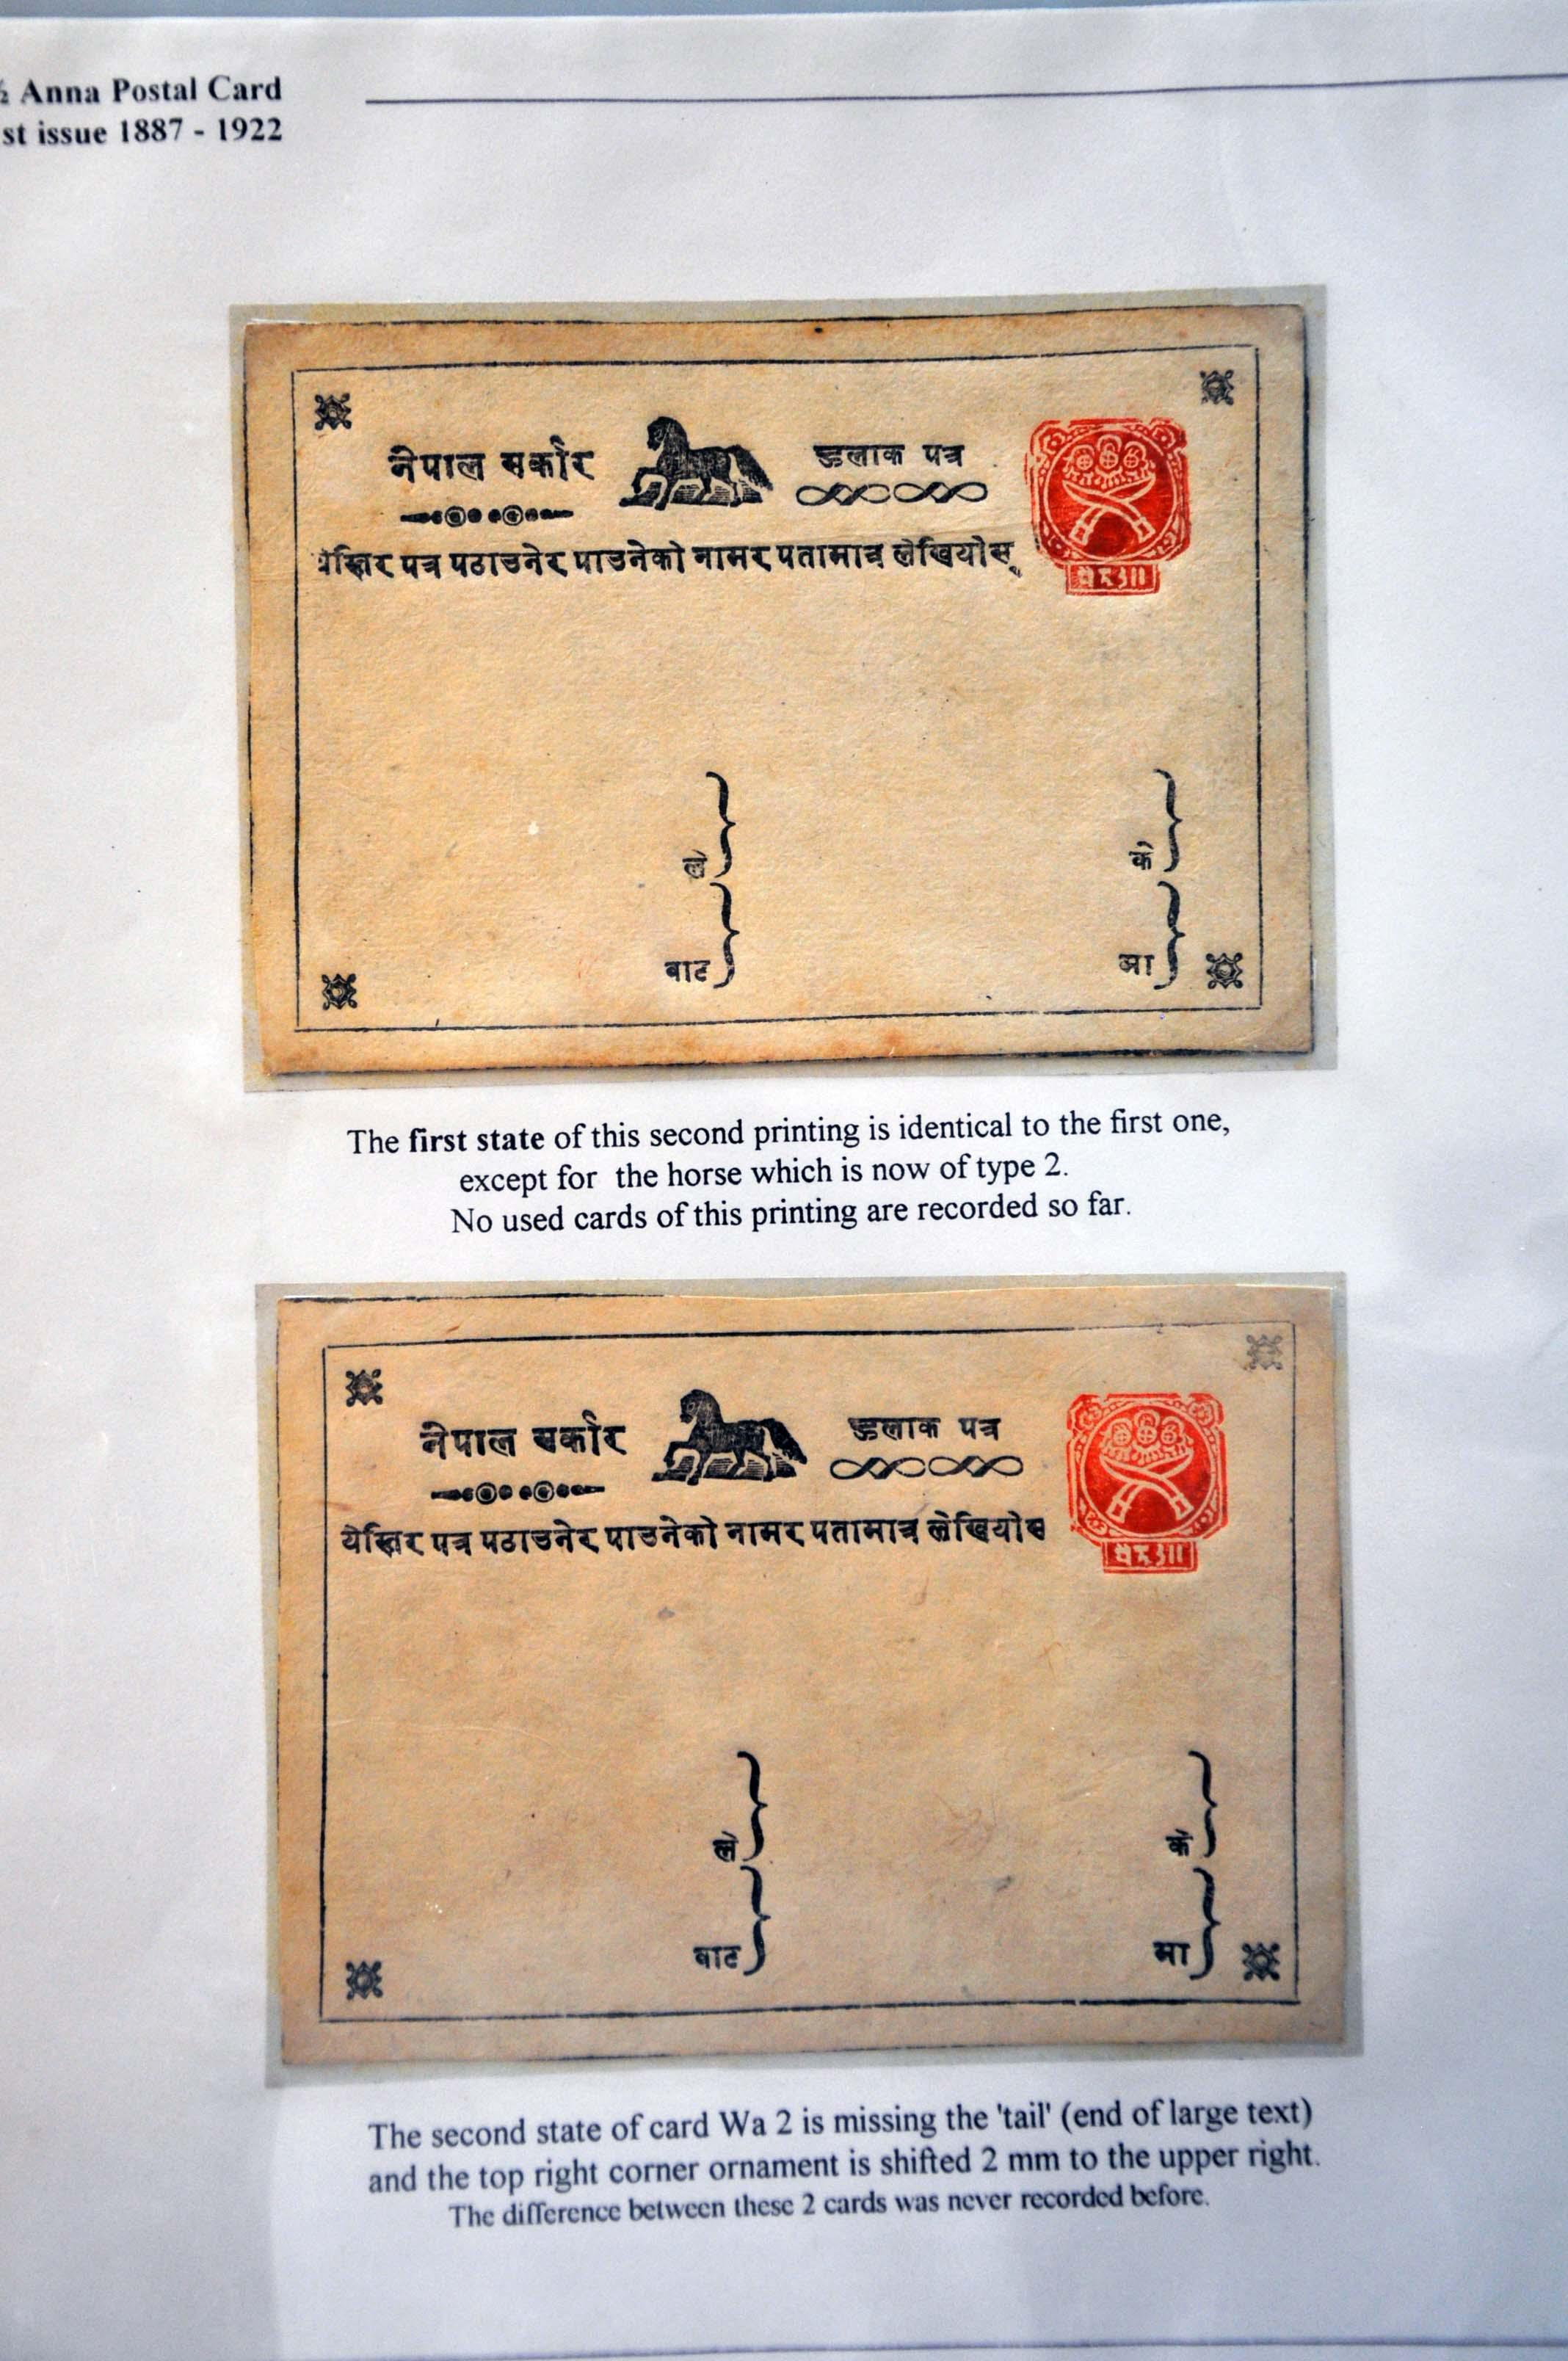 Lot 3 - Great Britain and former colonies Nepal -  Corinphila Veilingen Auction 245-246 Day 1 - Nepal - The Dick van der Wateren Collection, Foreign countries - Single lots, Picture postcards